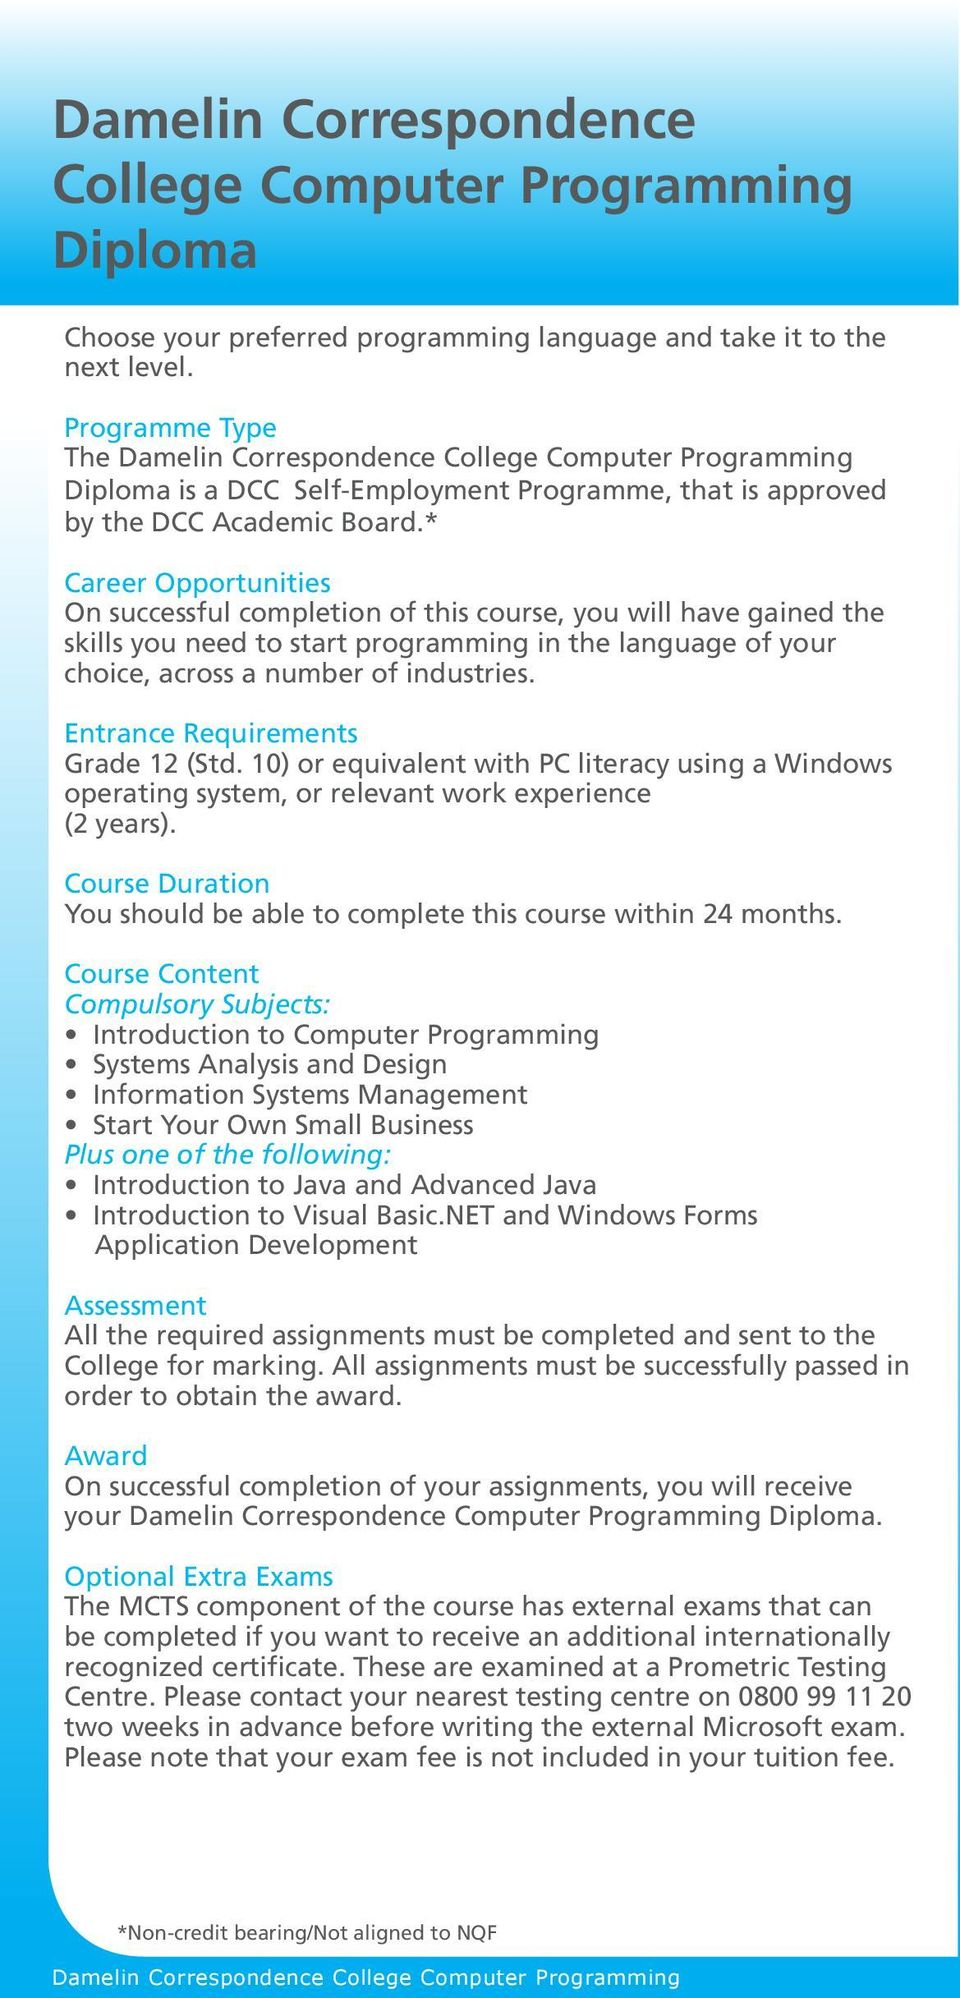 * Career Opportunities On successful completion of this course, you will have gained the skills you need to start programming in the language of your choice, across a number of industries.